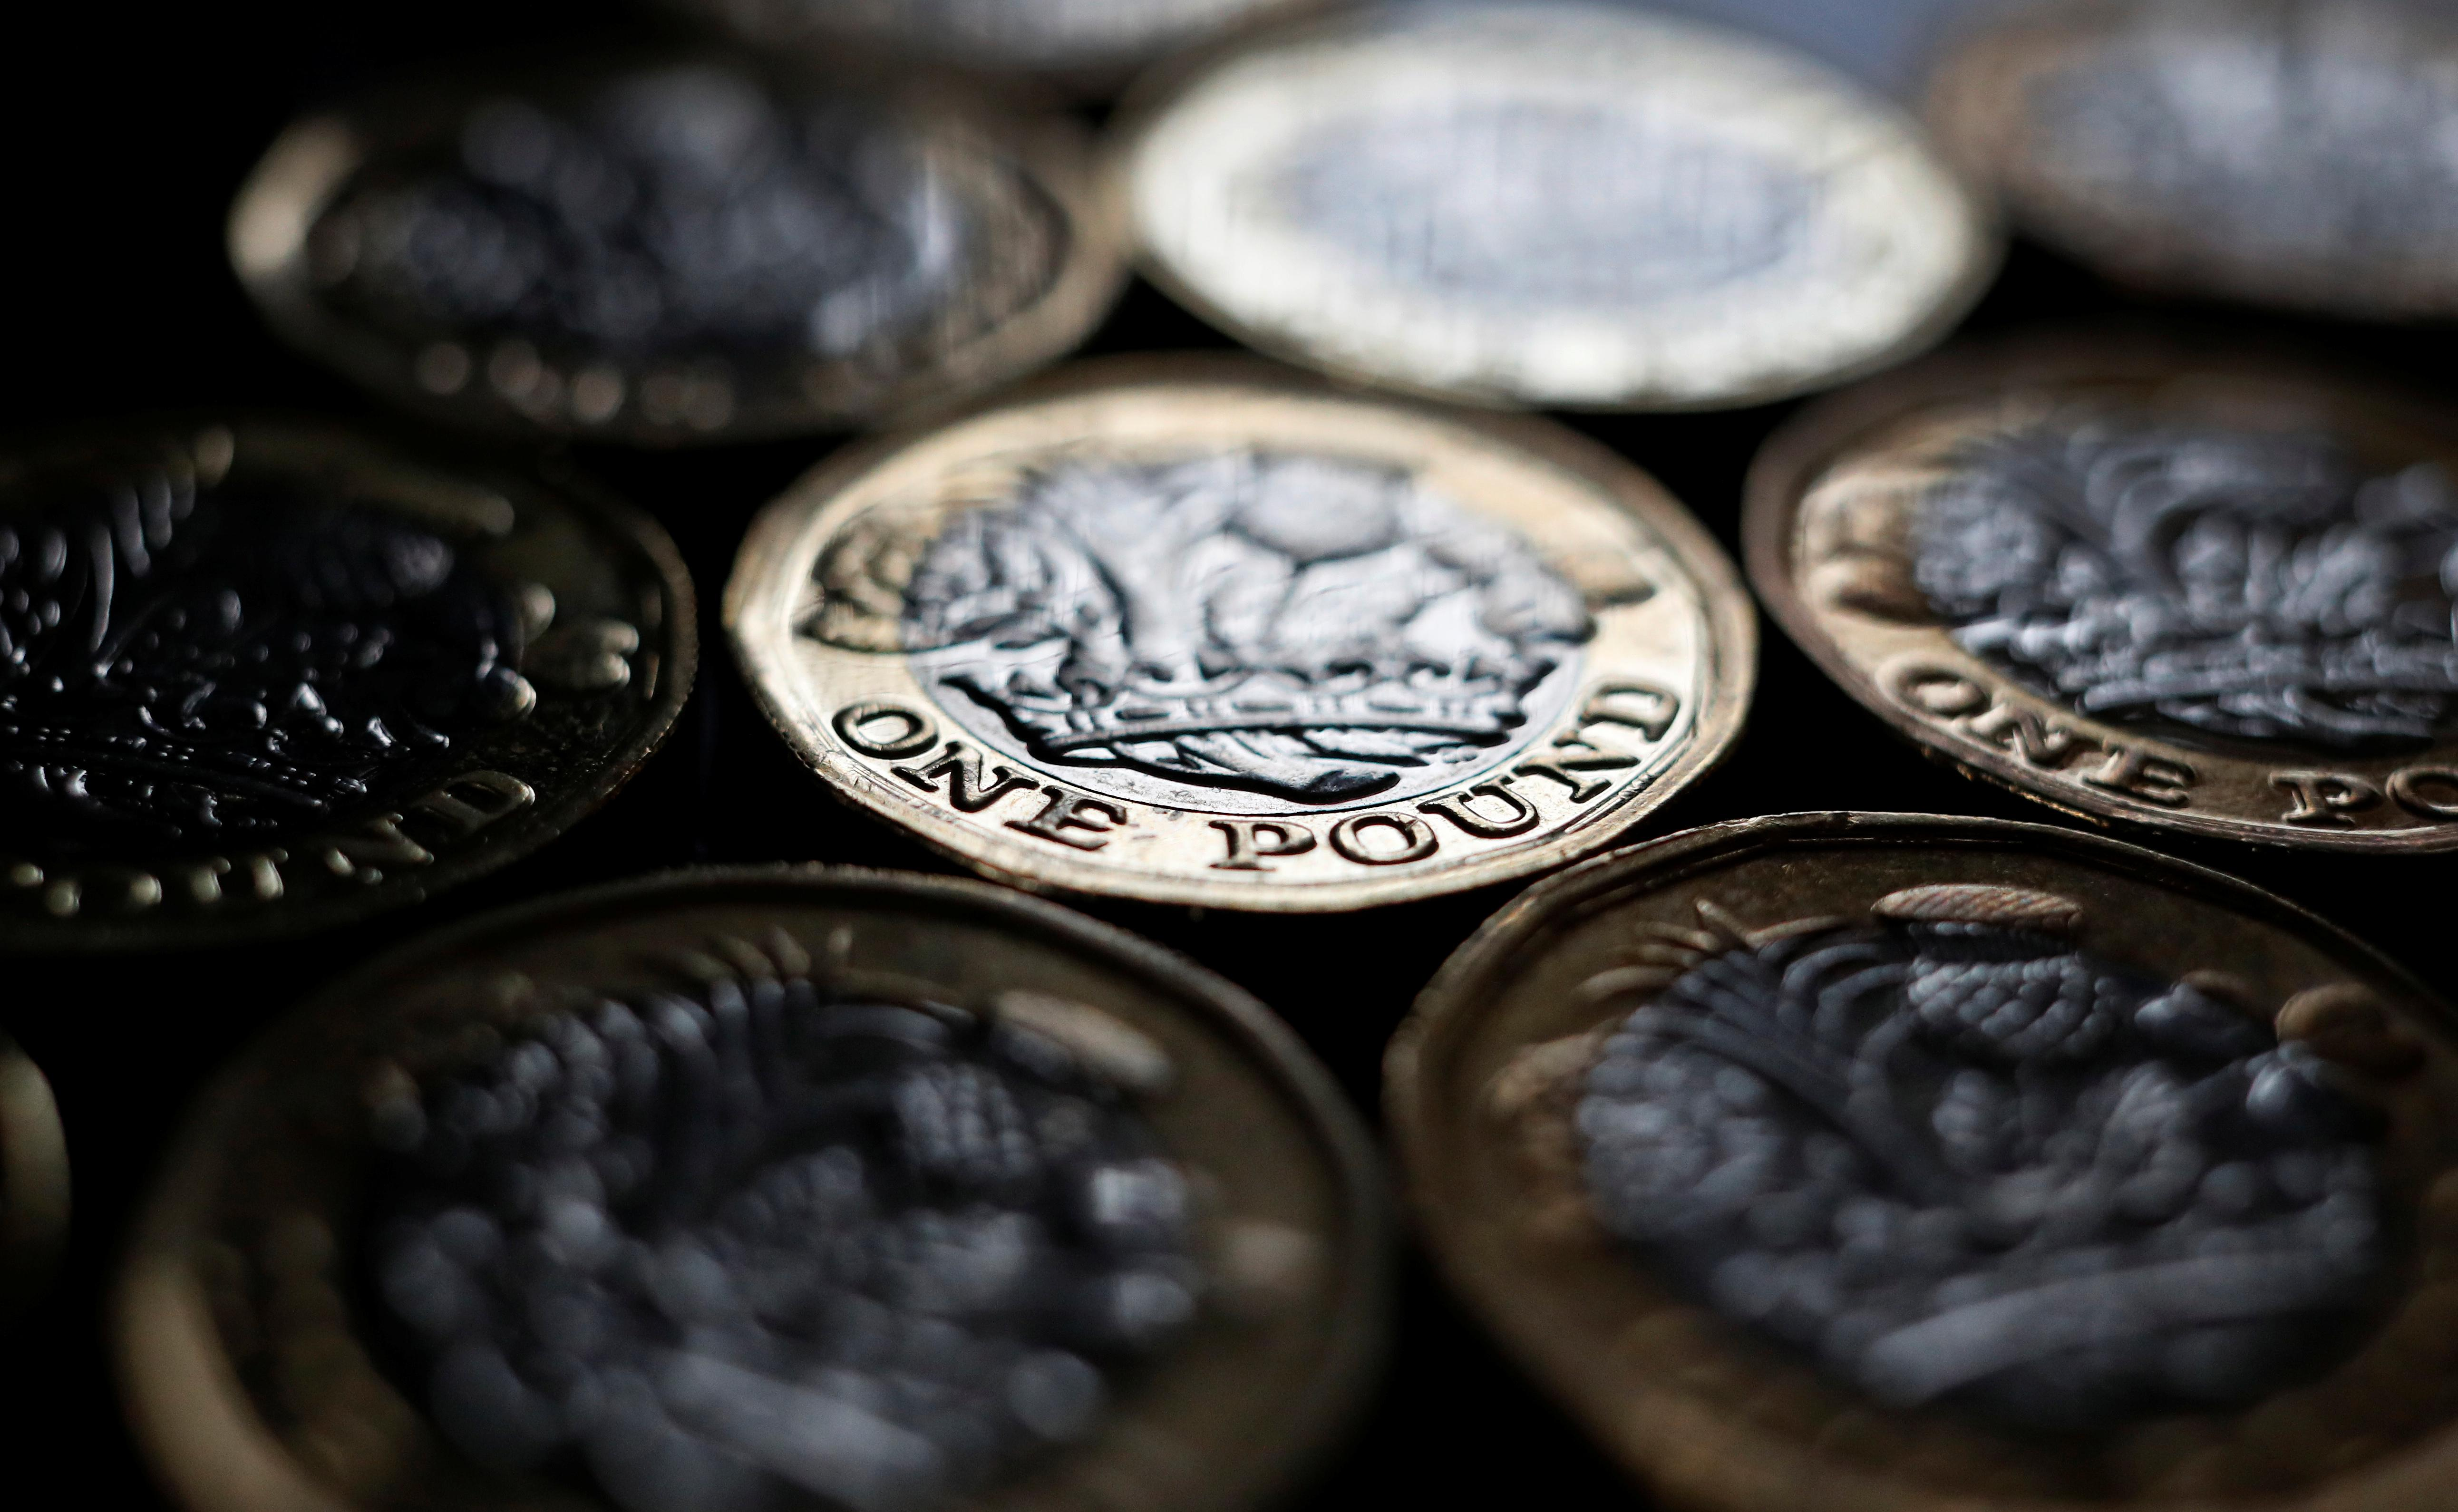 UK markets watchdog says research rules saved investors 70 million...